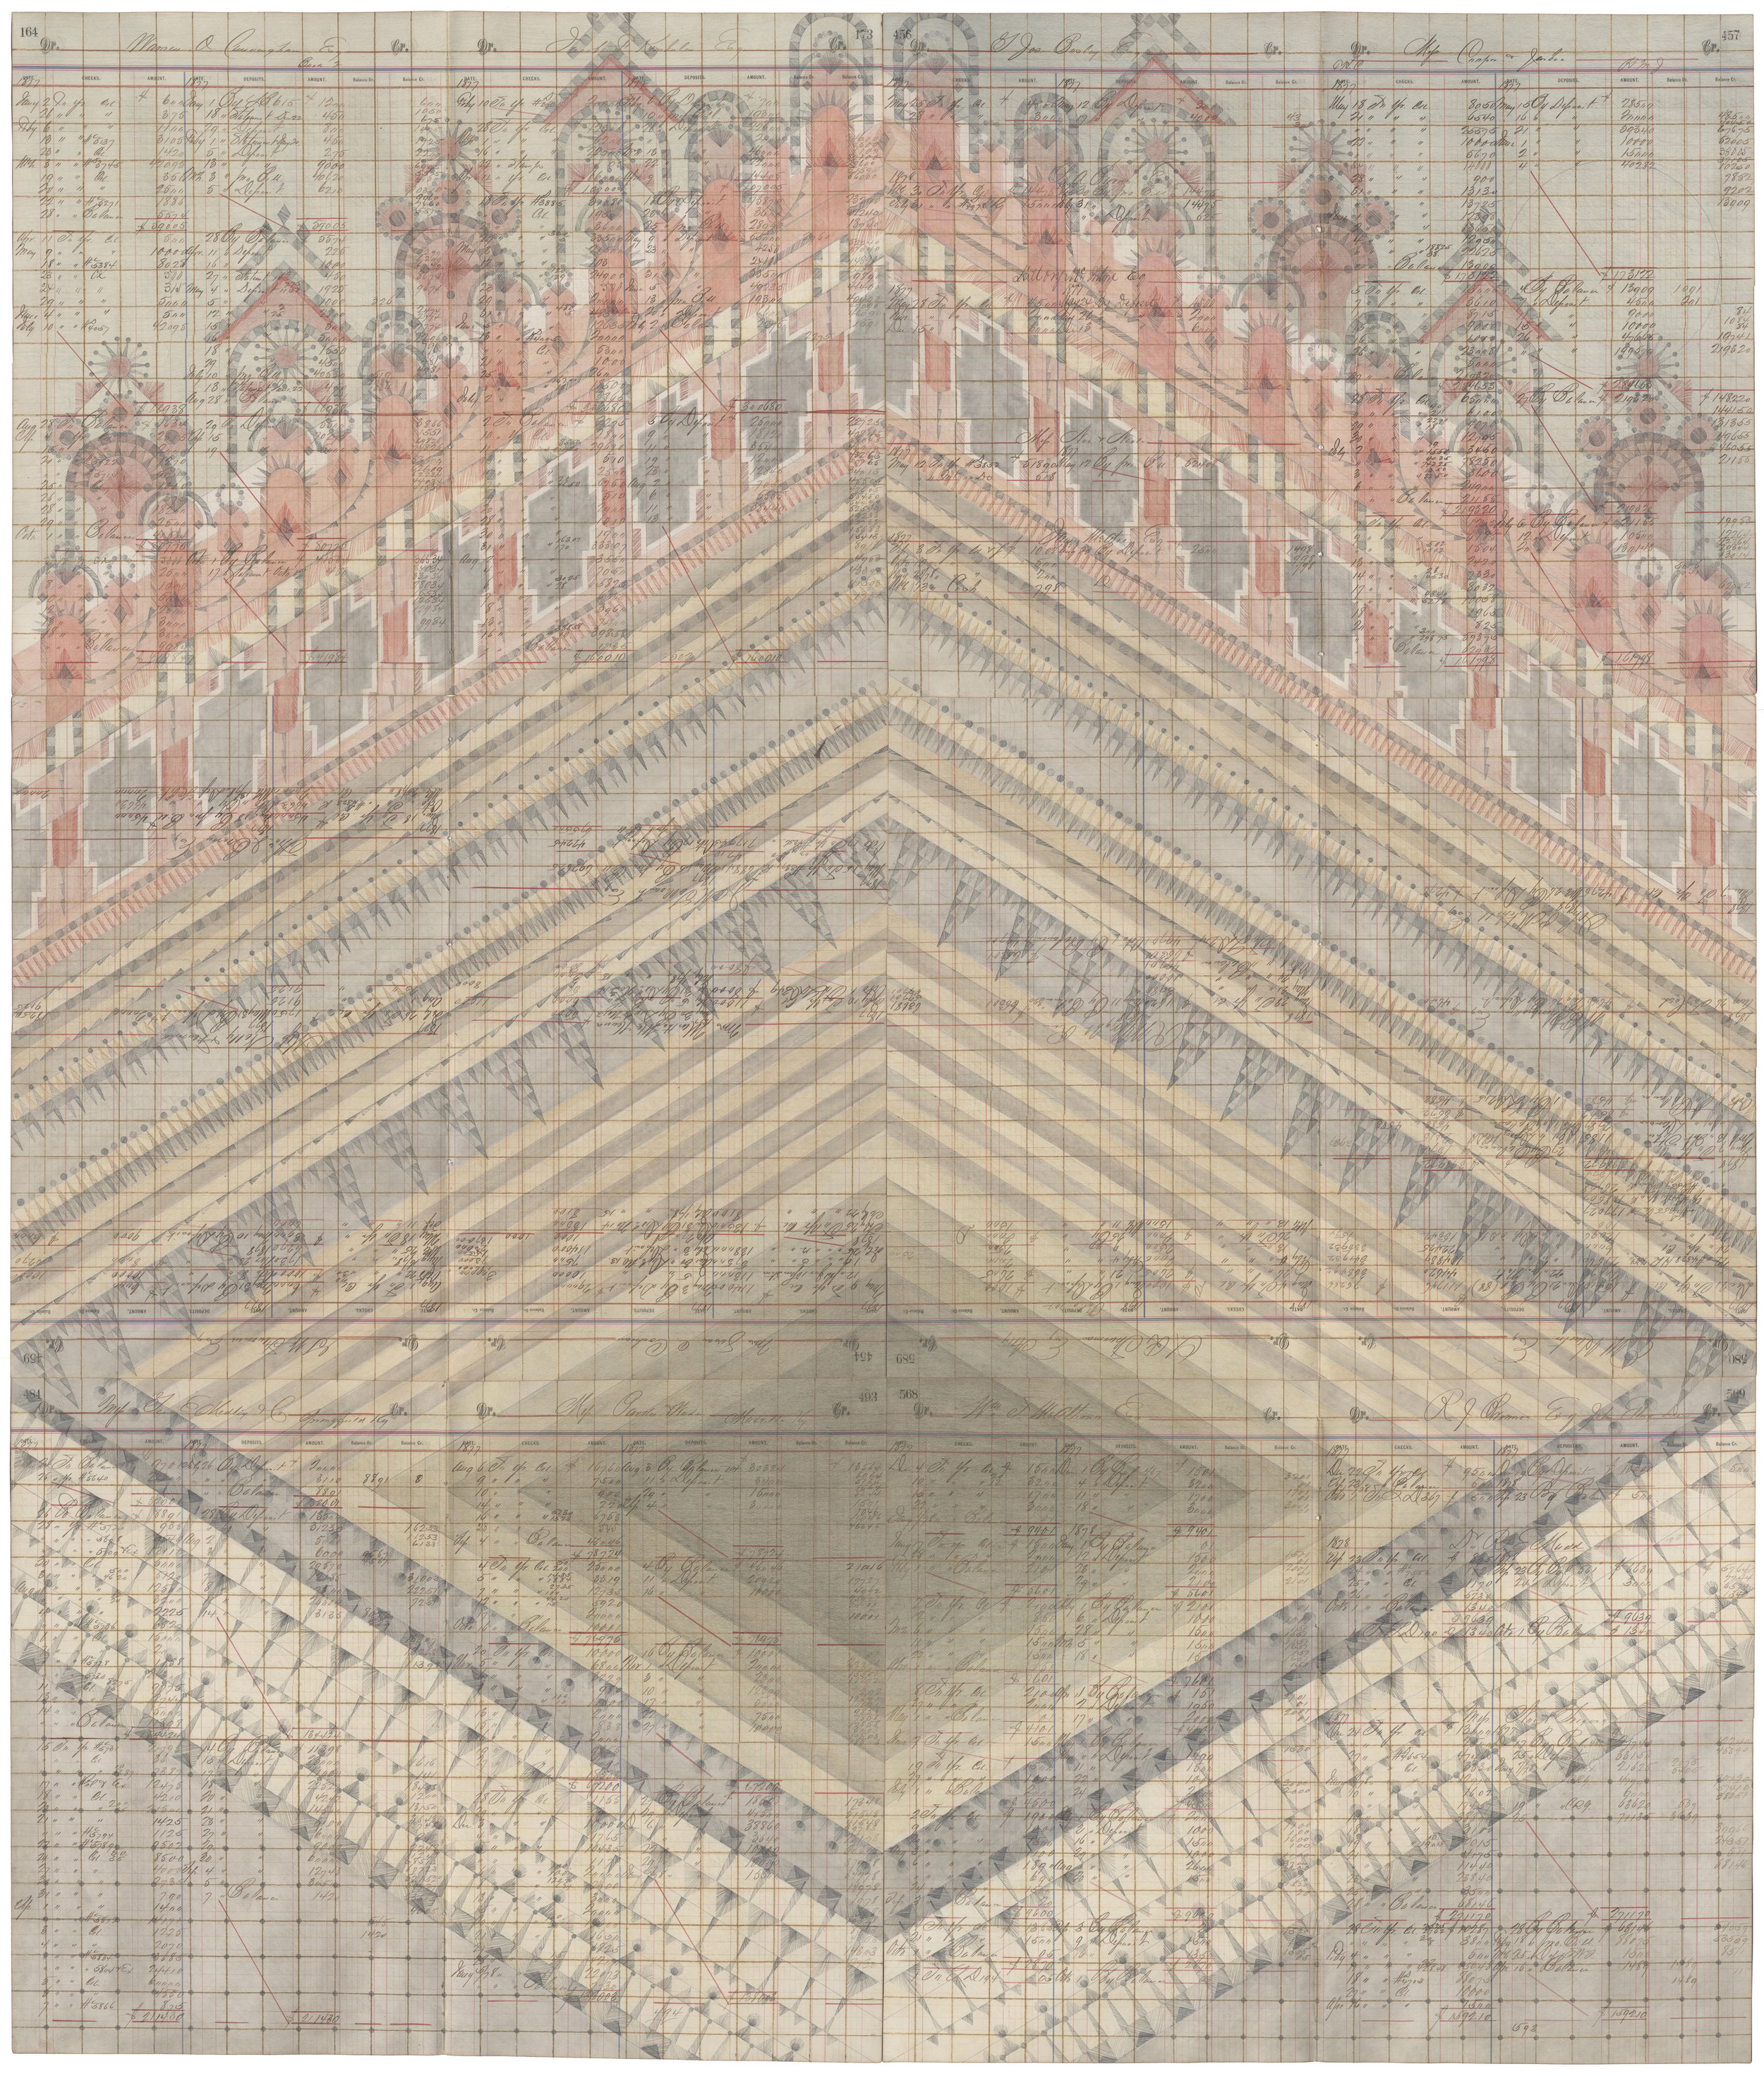 Diamond Stepwell, Colored Pencil and Graphite on Antique Ledger Book Pages. 55.5 x 47 inches